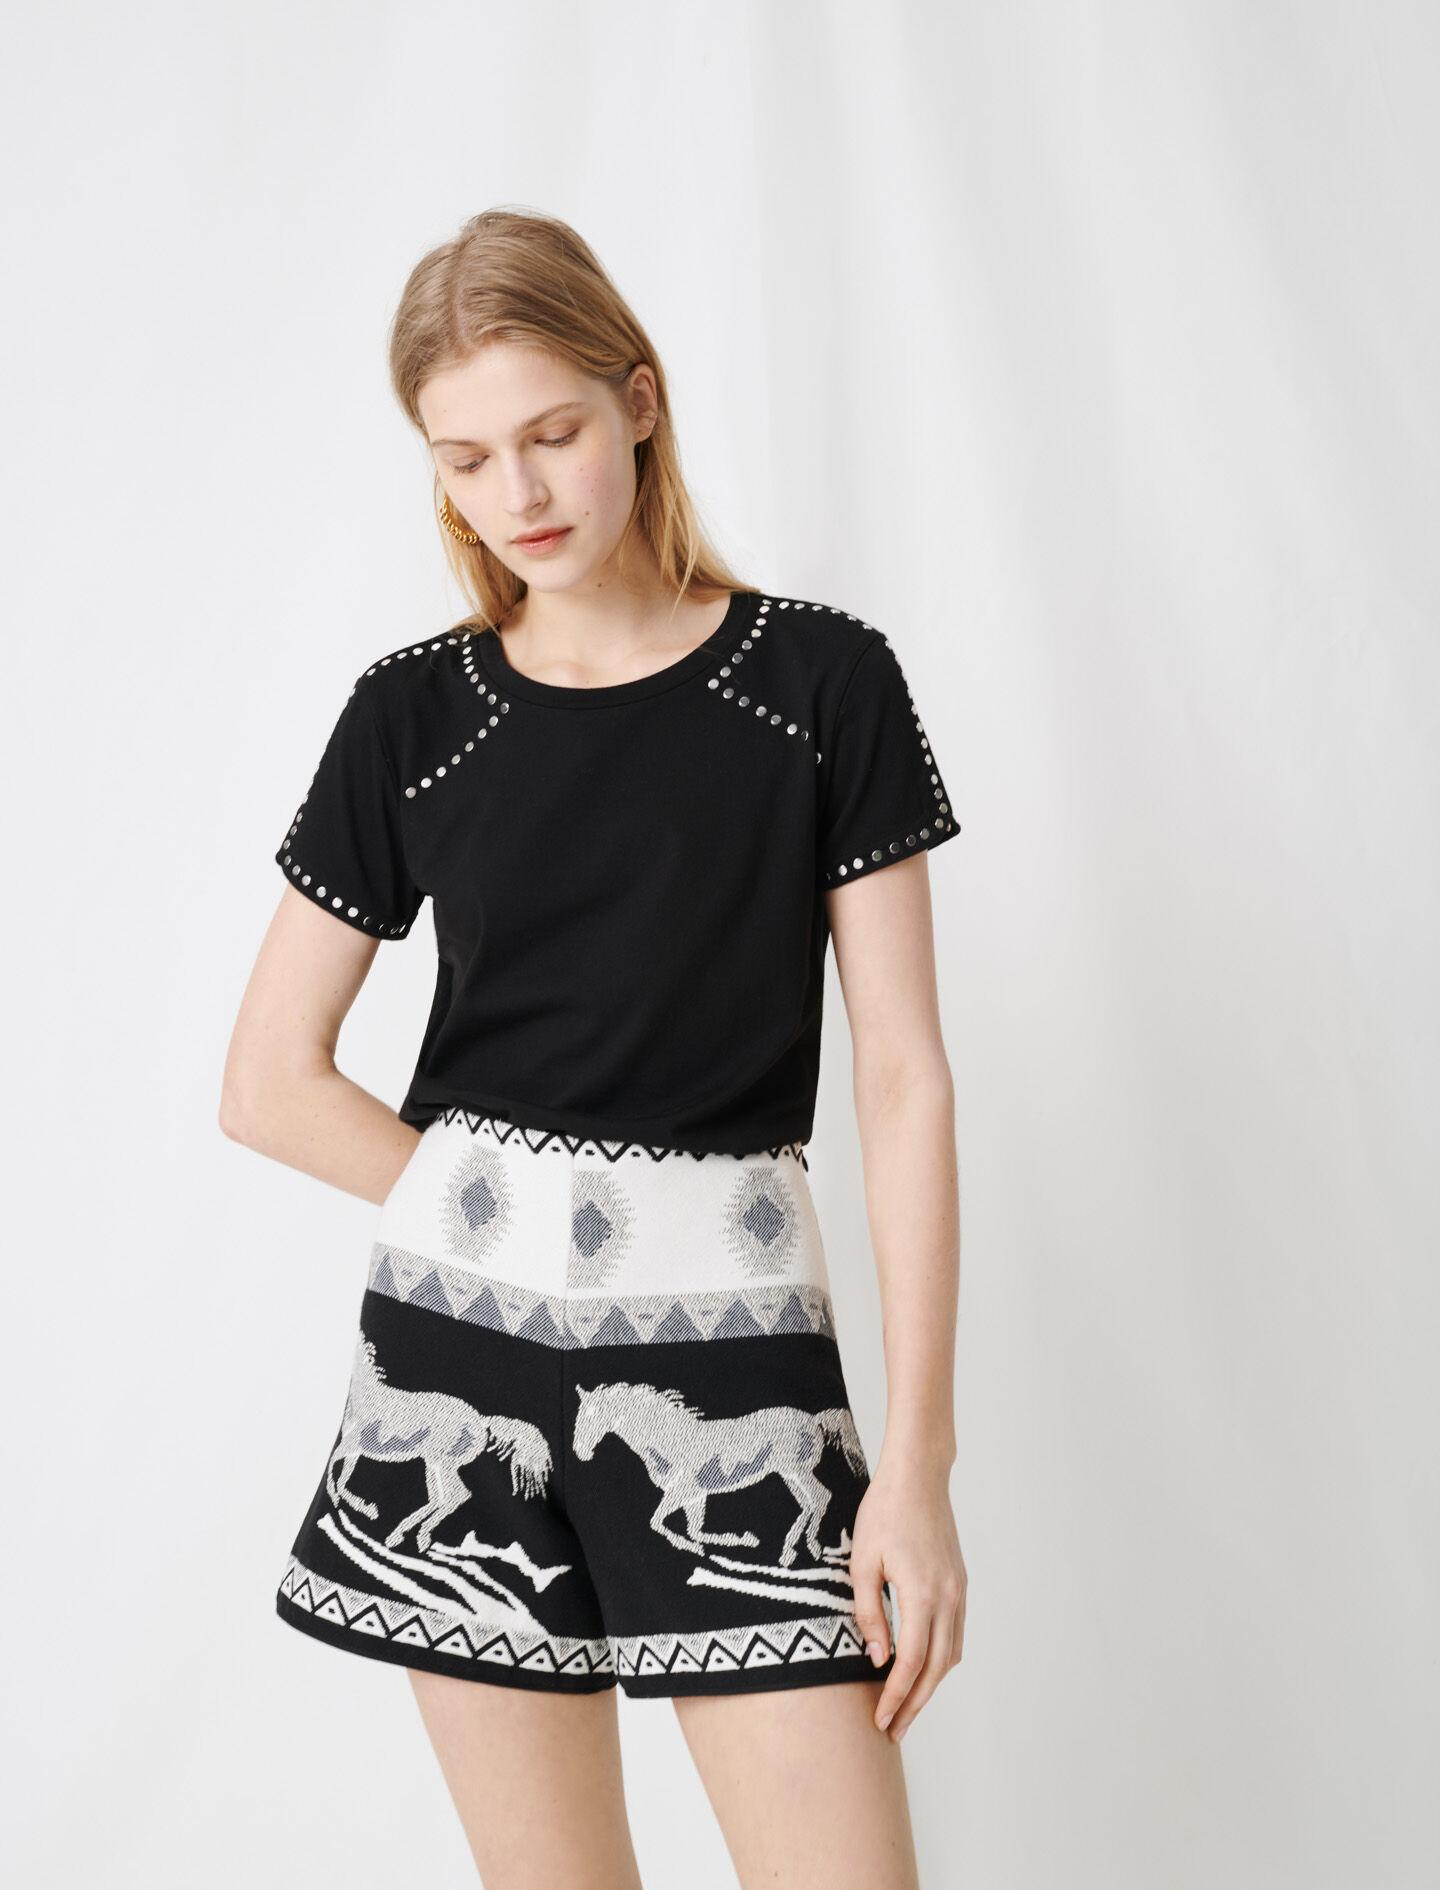 ROCK 'N' ROLL T-SHIRT WITH STUDS